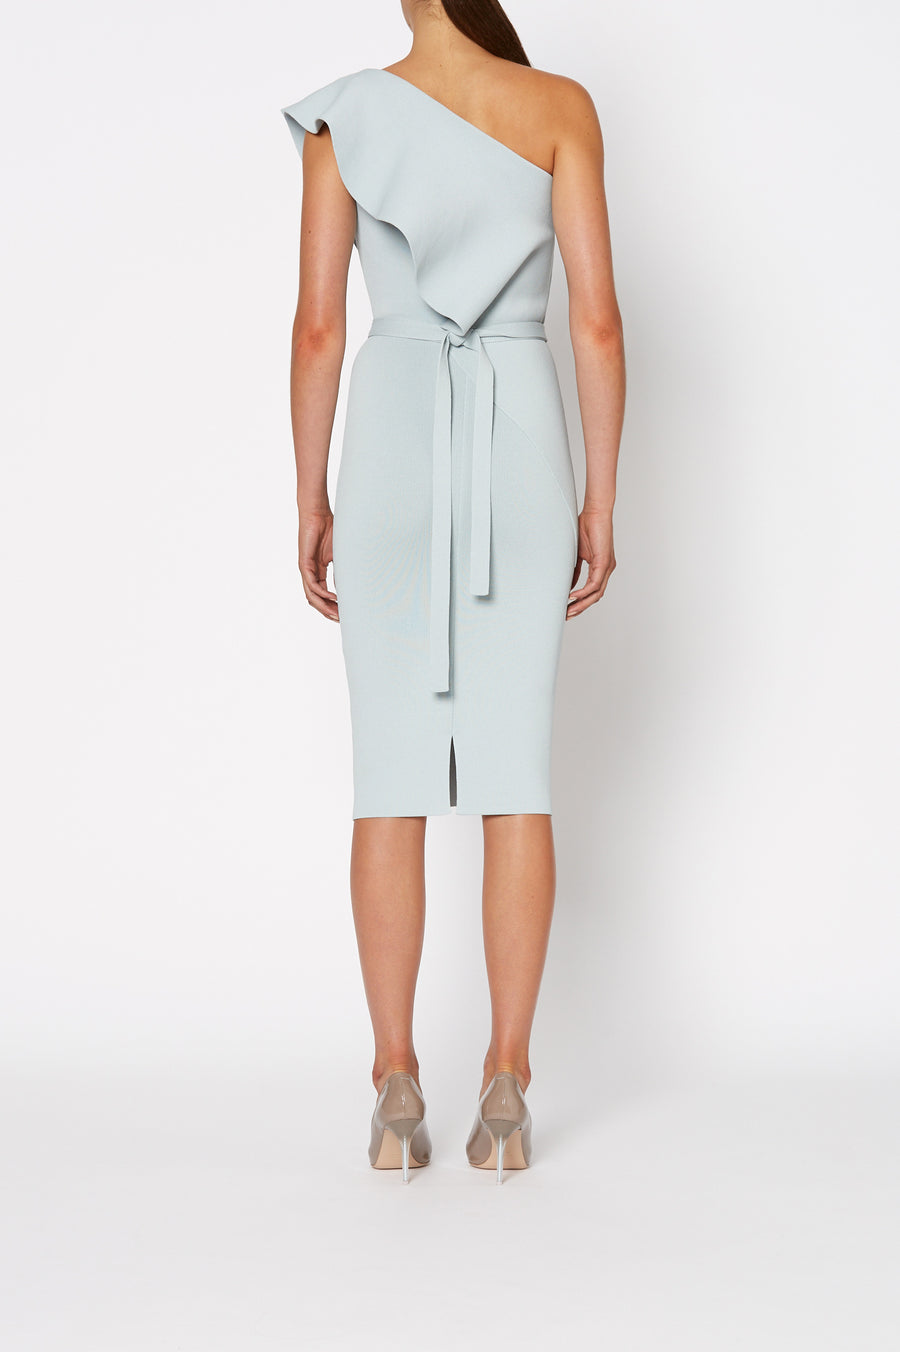 Crepe Knit Ruffle Dress, one shoulder dress, fitted throughout, ruffle feature from shoulder through opposite hip, falls just below knee, skirt has center back slit, Separate belt in same fabric included, Color Argento